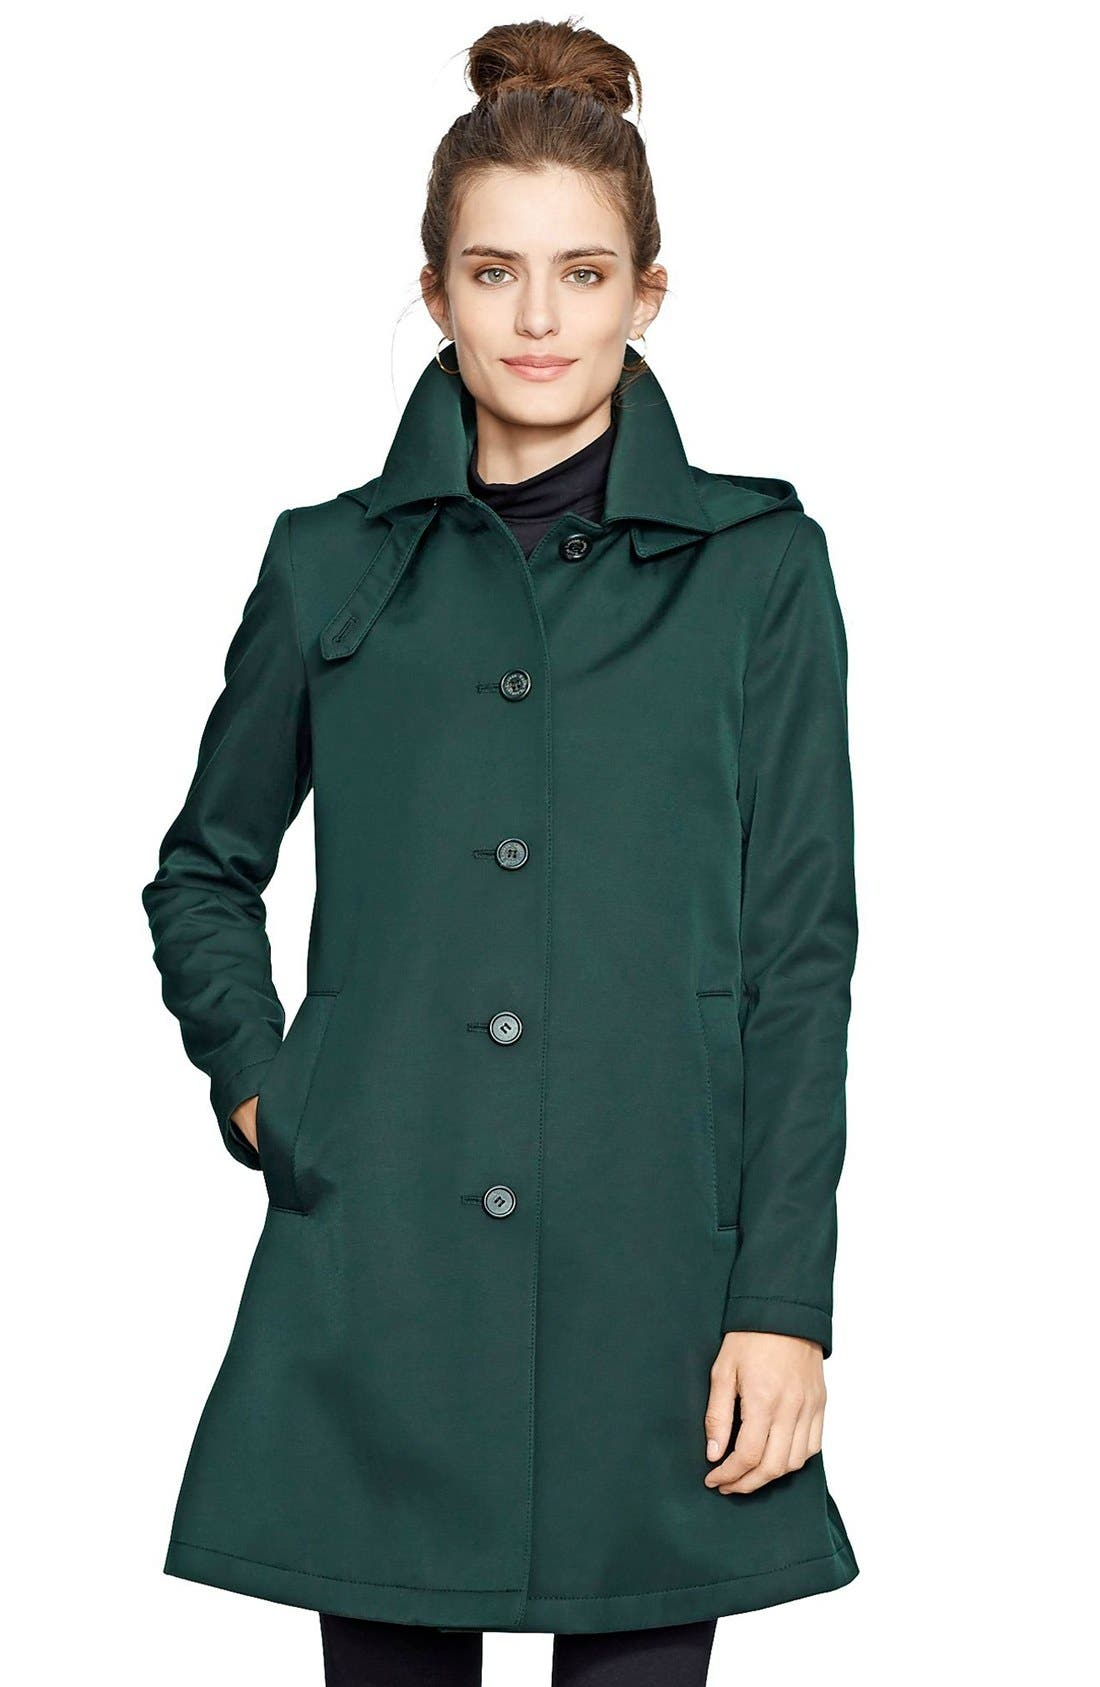 Alternate Image 1 Selected - Lauren Ralph Lauren A-Line Raincoat (Regular & Petite) (Nordstrom Exclusive)